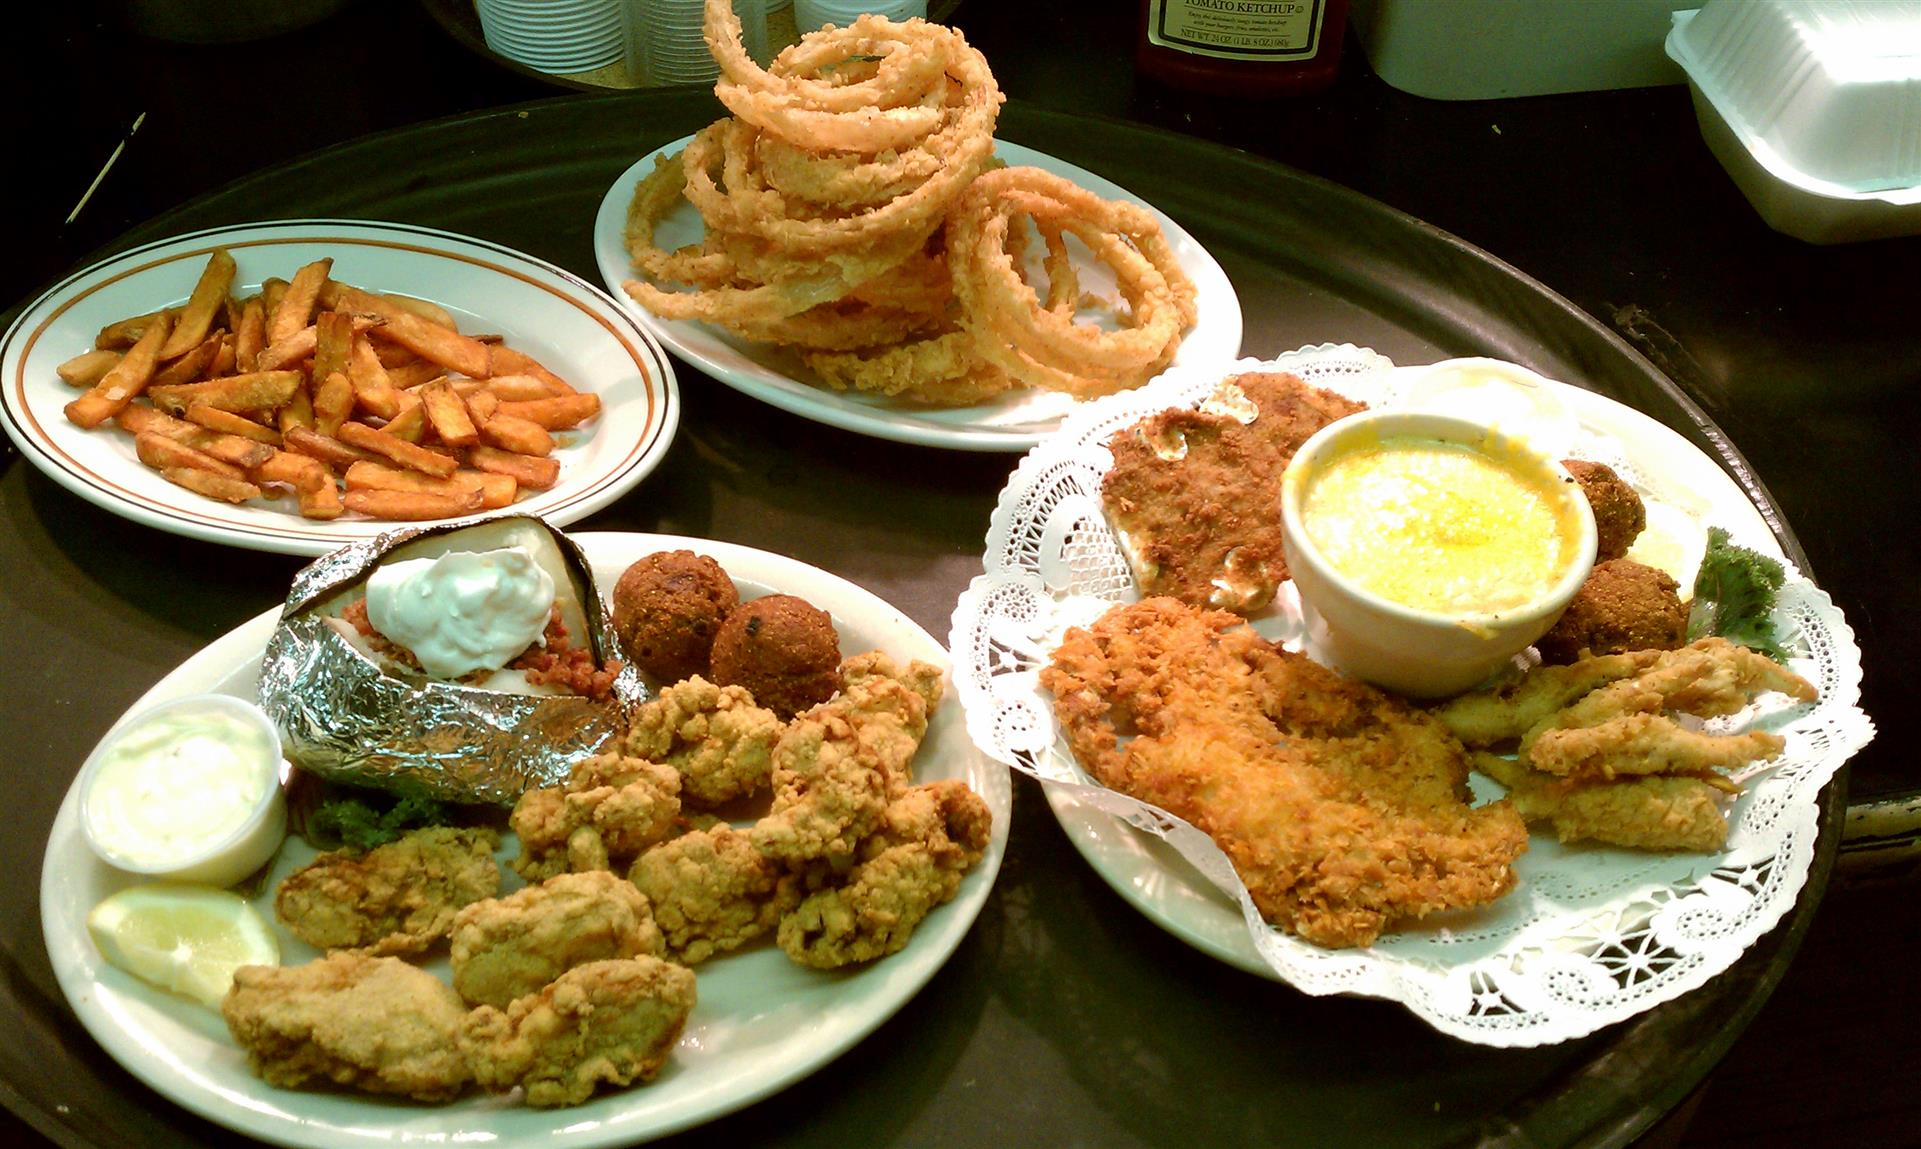 Fried Oysters Crab Platter with a side of onion rings